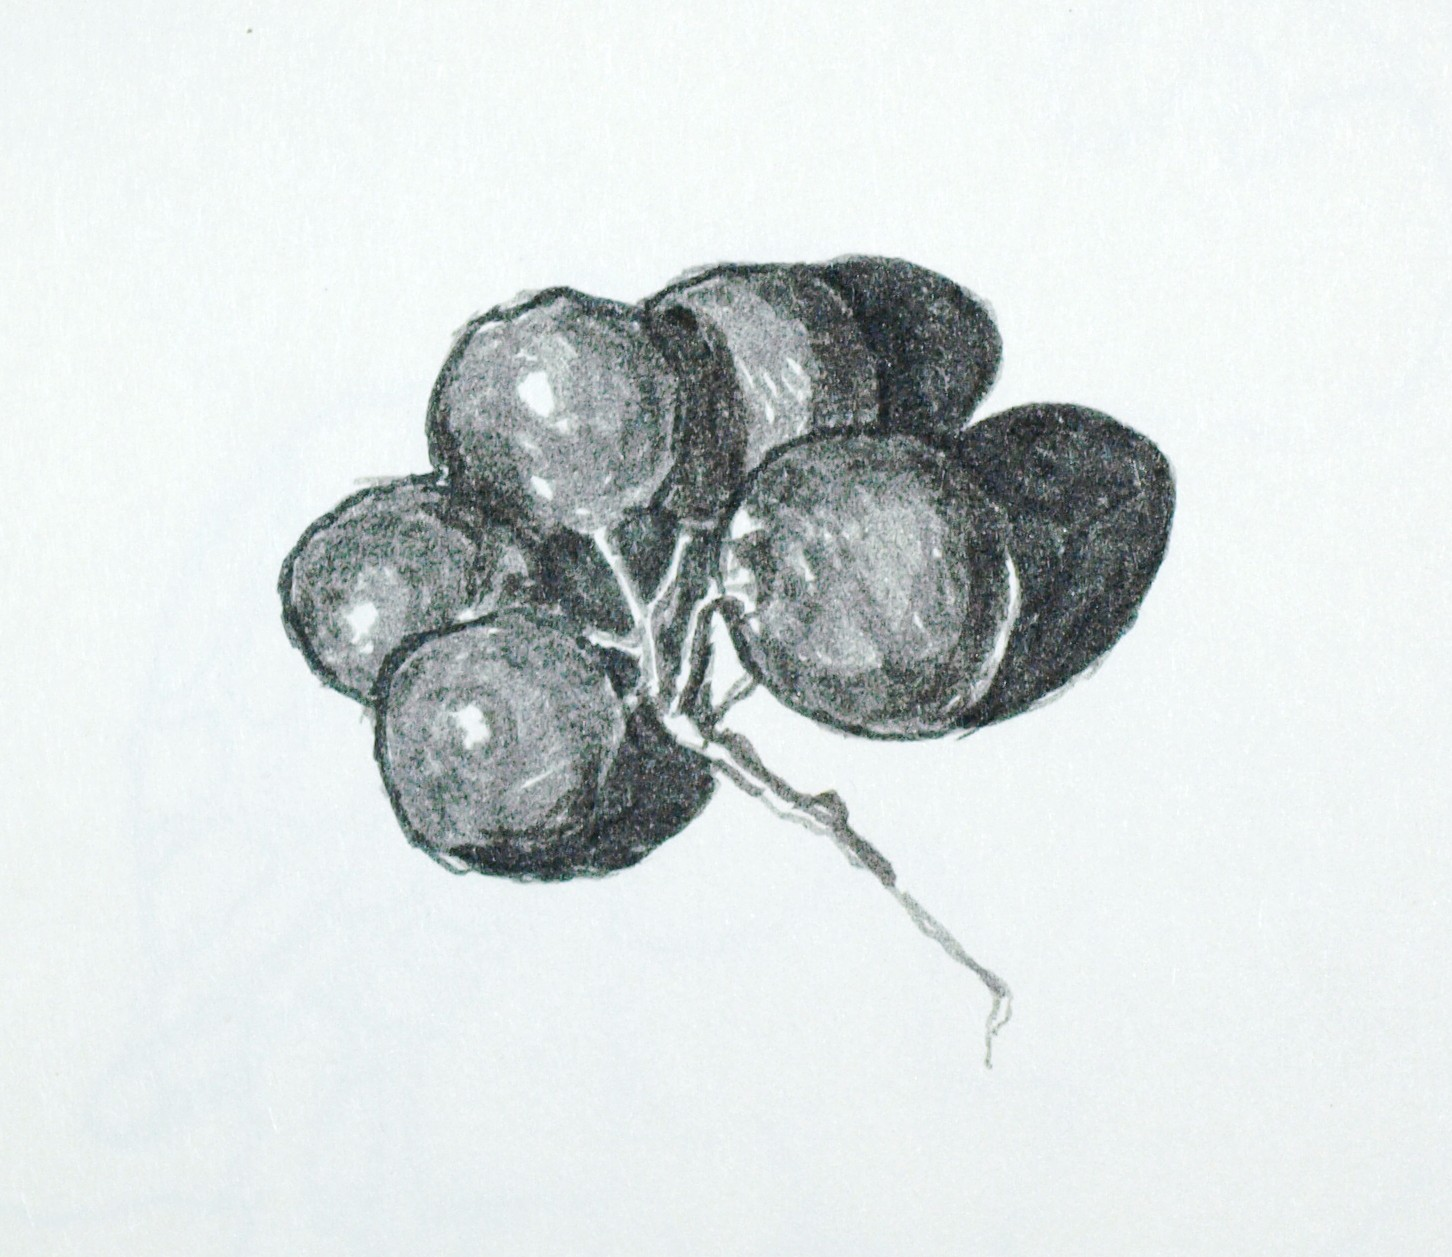 This Drawing Is An Insignificant Little Piece, But A Major Experiment In My  Drawing Process Just A Few Grapes Left In The Fridge, I Wanted To Draw The